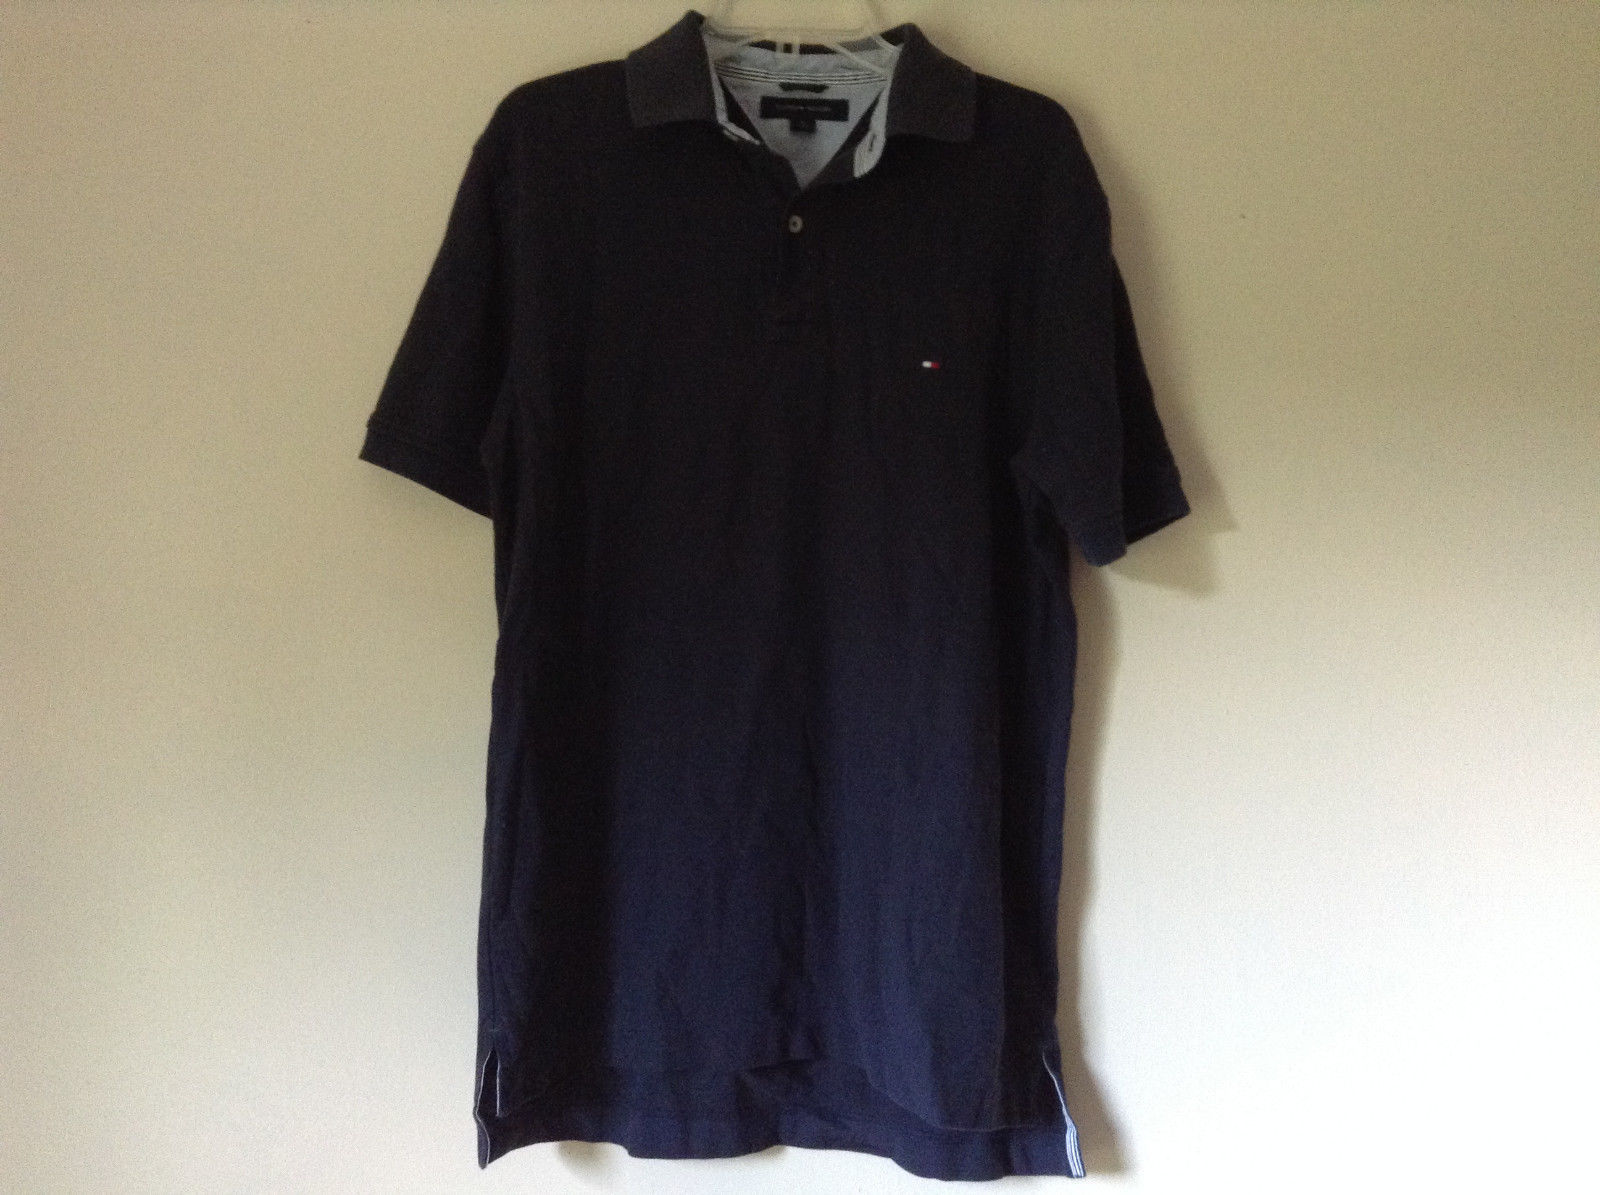 Dark Navy Blue Size Medium Short Sleeve Casual Shirt by Tommy Hilfiger Collared